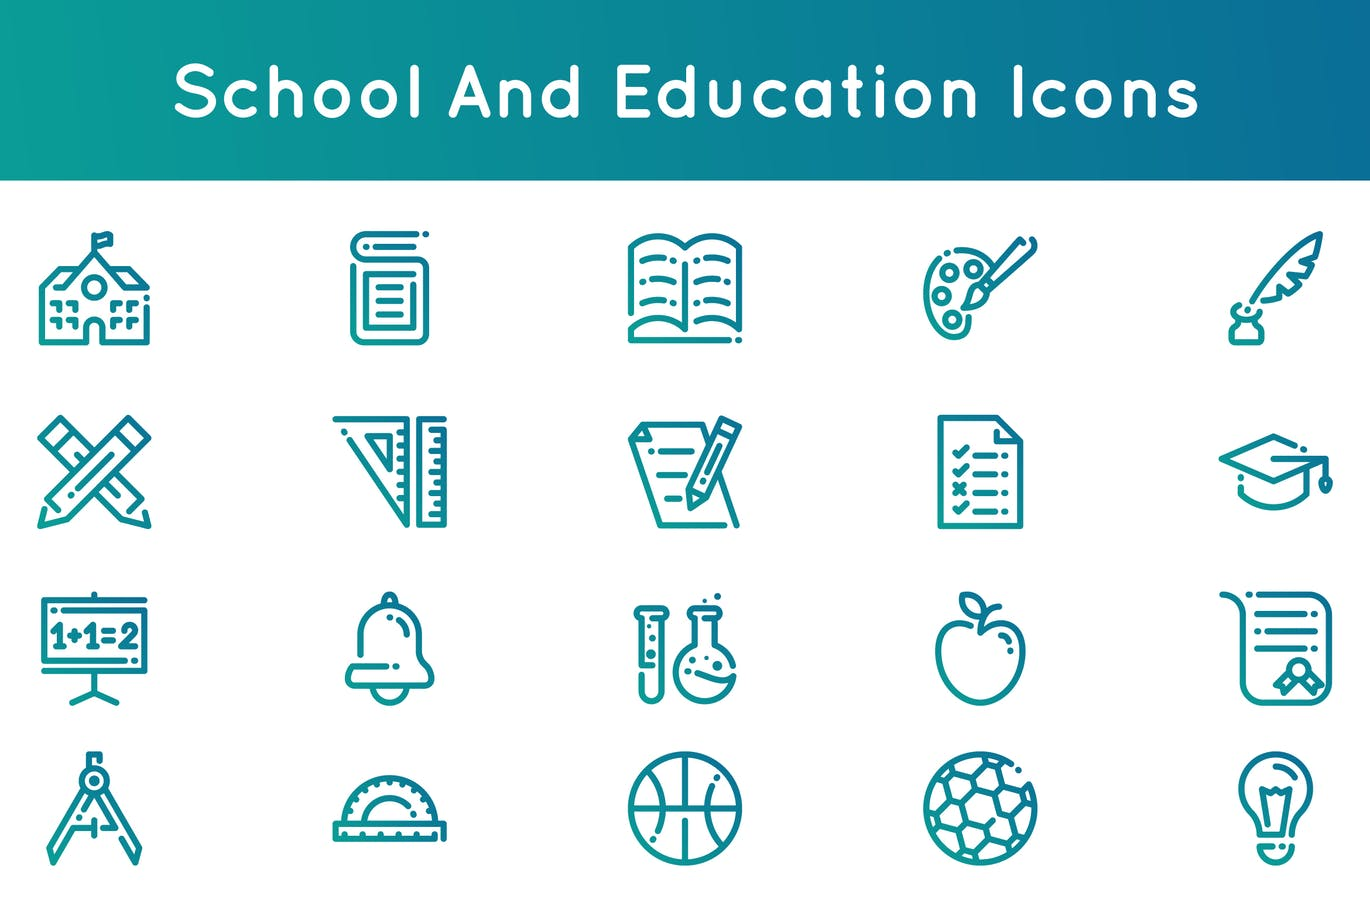 school-and-education-icons